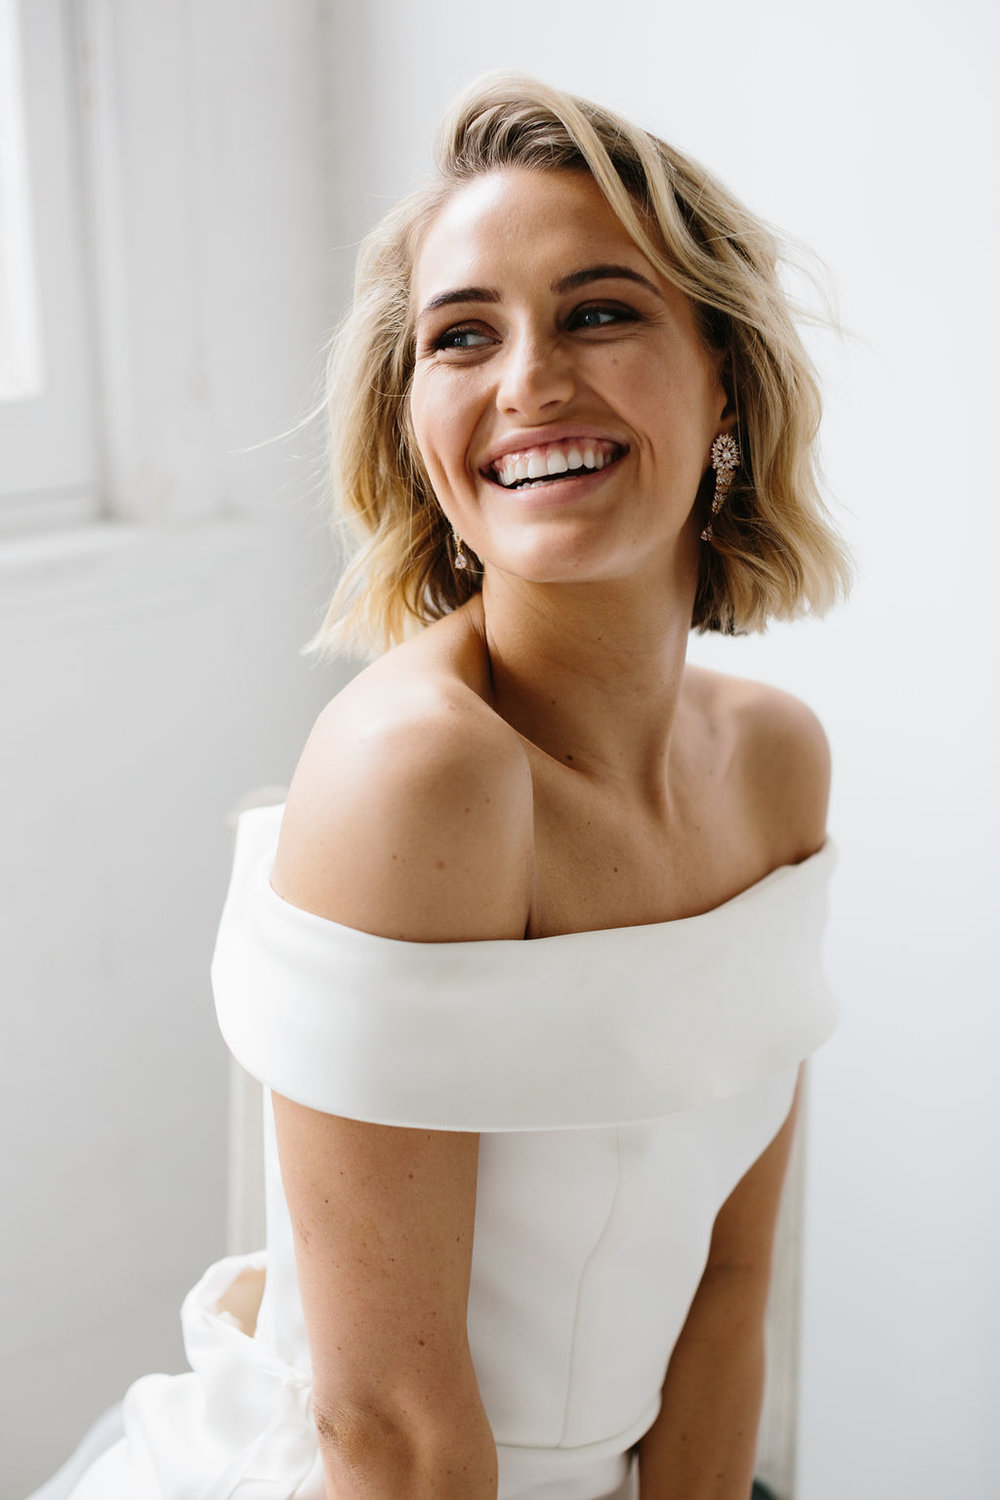 Stunning smiling natural modern bride with hair out and chandelier earrings in wedding photo wearing offshoulder wedding dress for Amelie George Jewellery Campaign